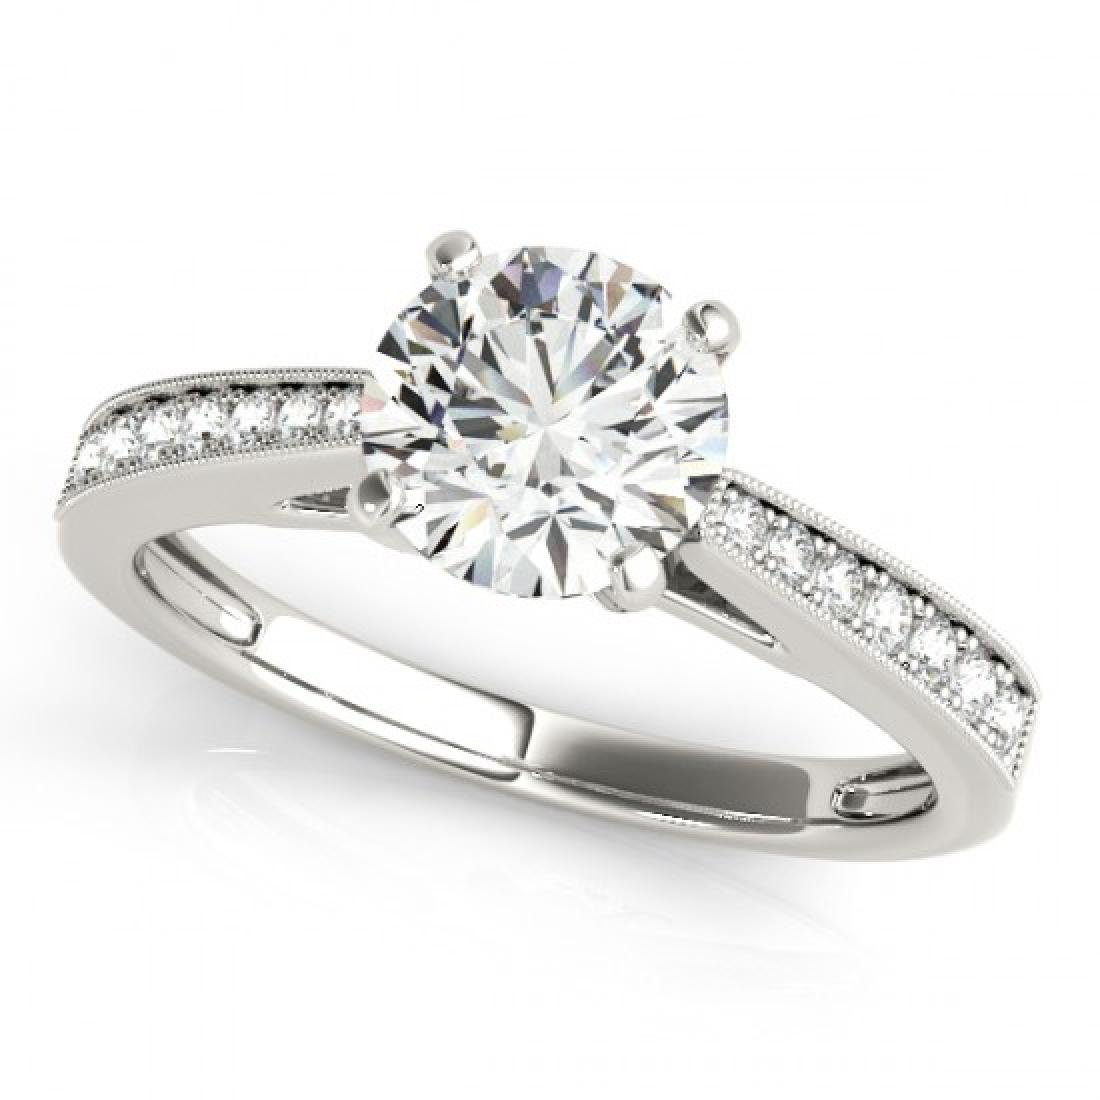 0.4 CTW Certified VS/SI Diamond Solitaire Ring 14K